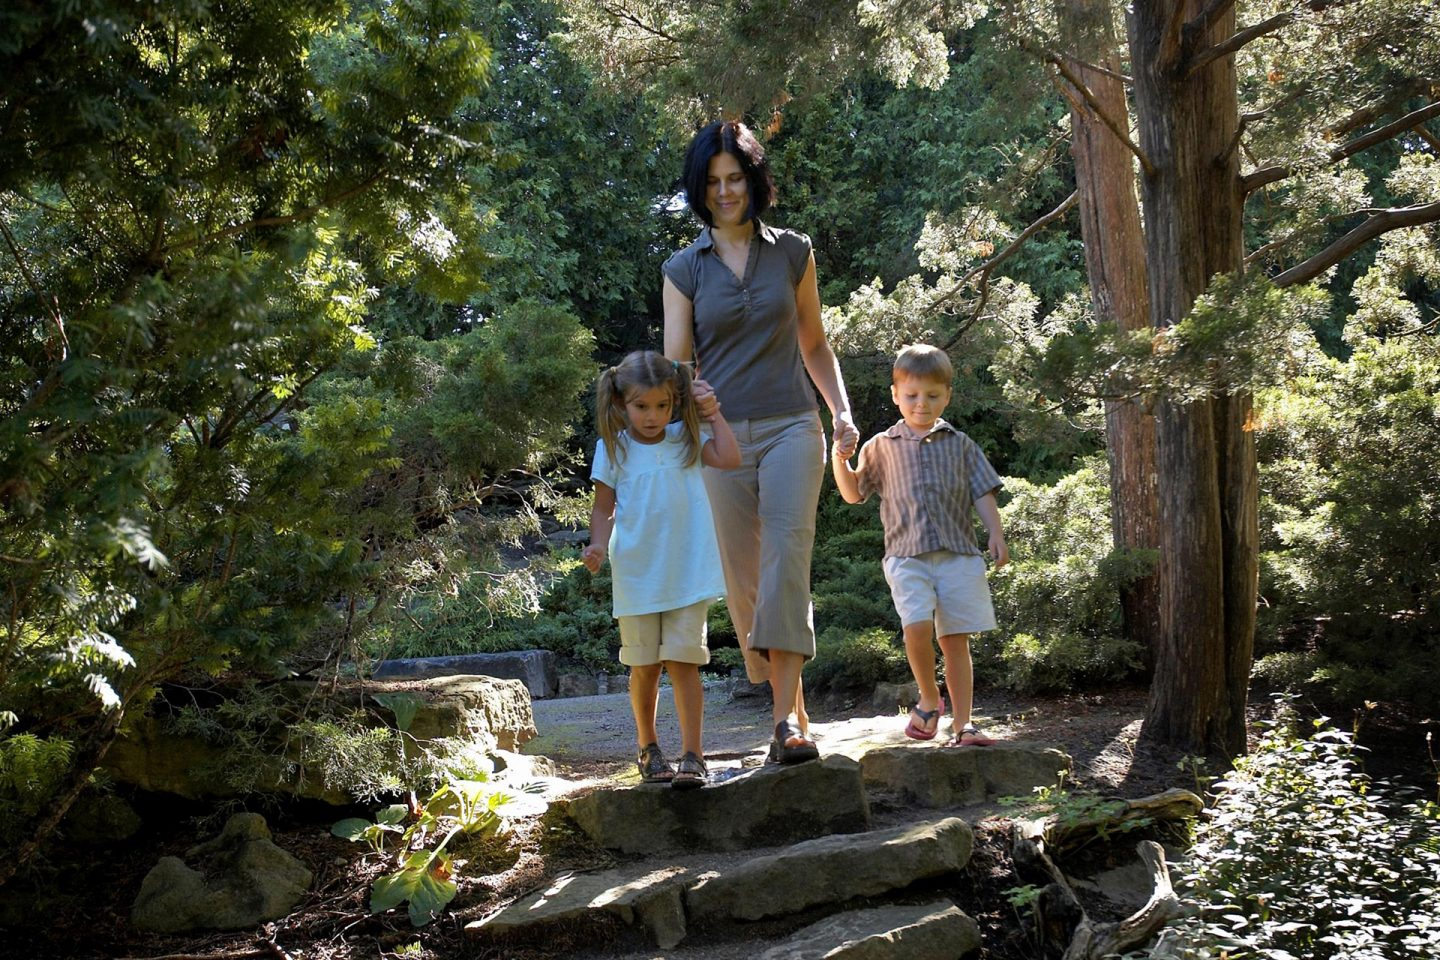 Family Fun Day: Who's Been Here? (Outdoors)